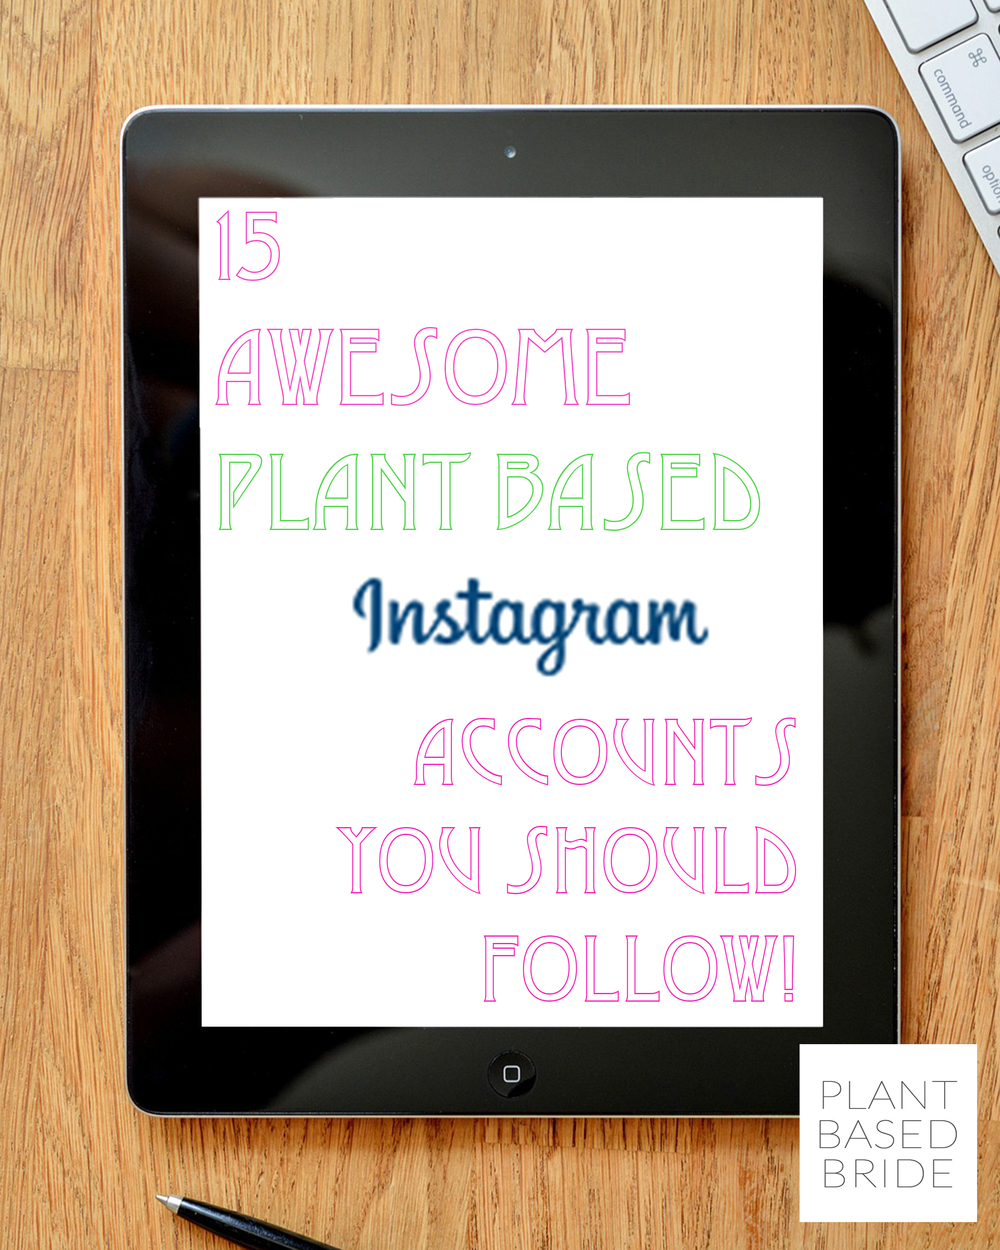 15 Awesome Plant Based Instagram Accounts You Should Follow! plantbasedbride.com